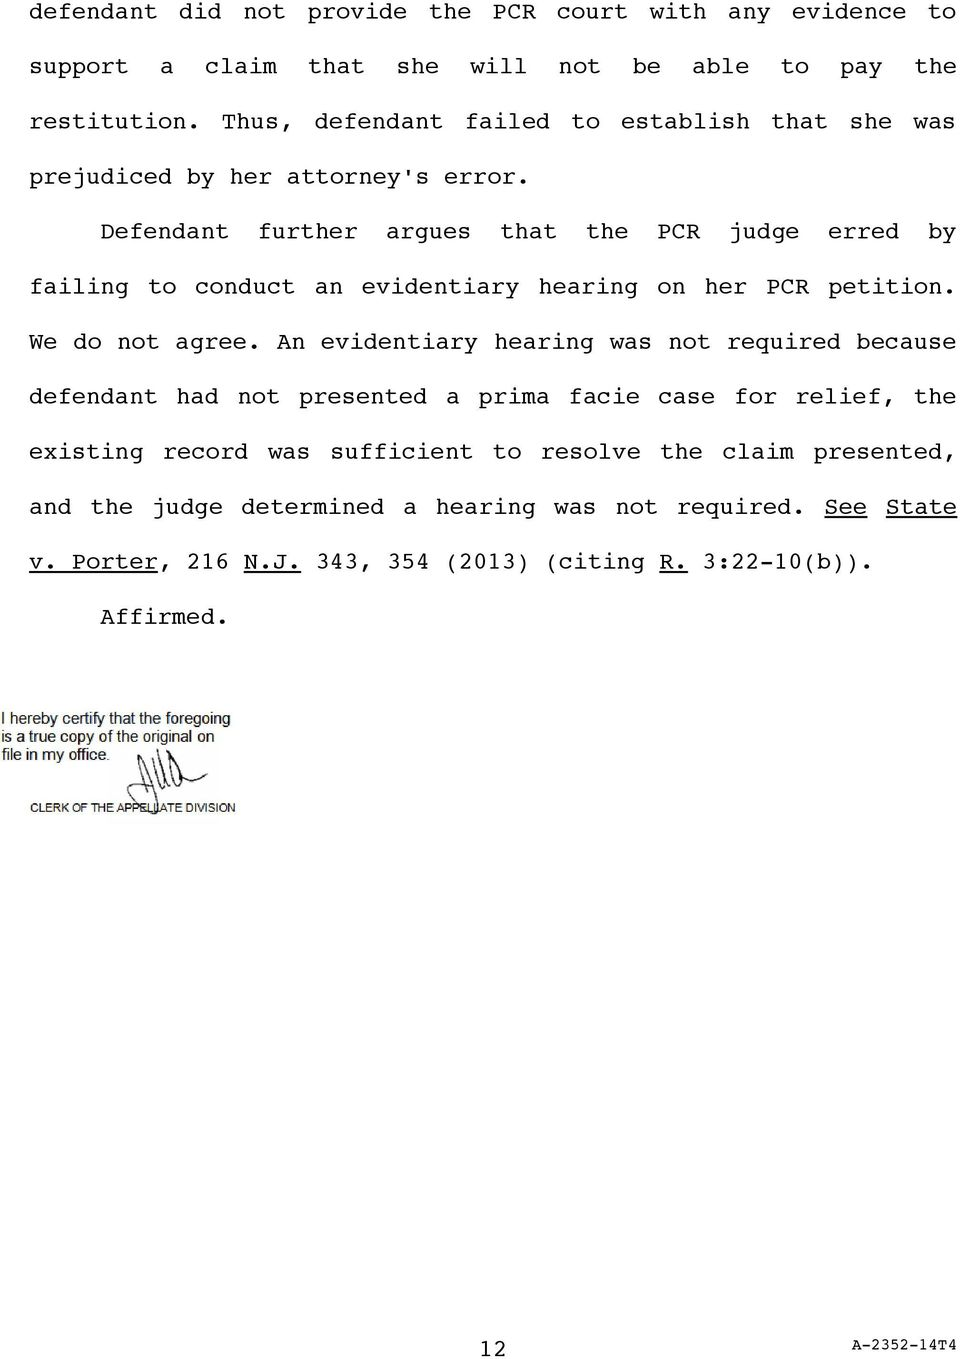 Defendant further argues that the PCR judge erred by failing to conduct an evidentiary hearing on her PCR petition. We do not agree.